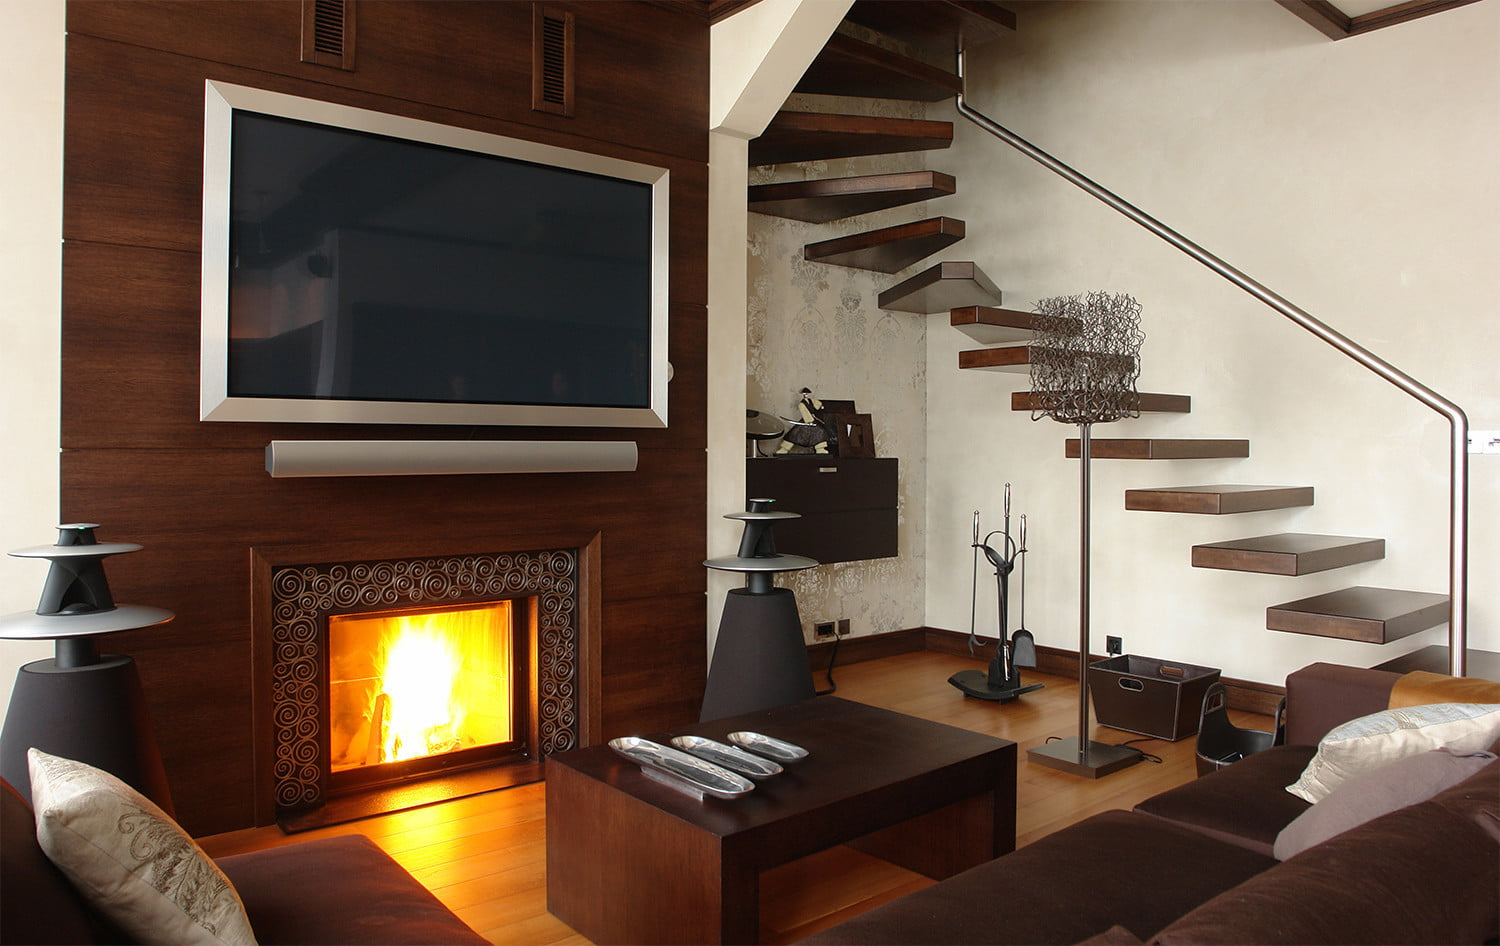 Four reasons not to slap that flat-screen TV over your fireplace ...